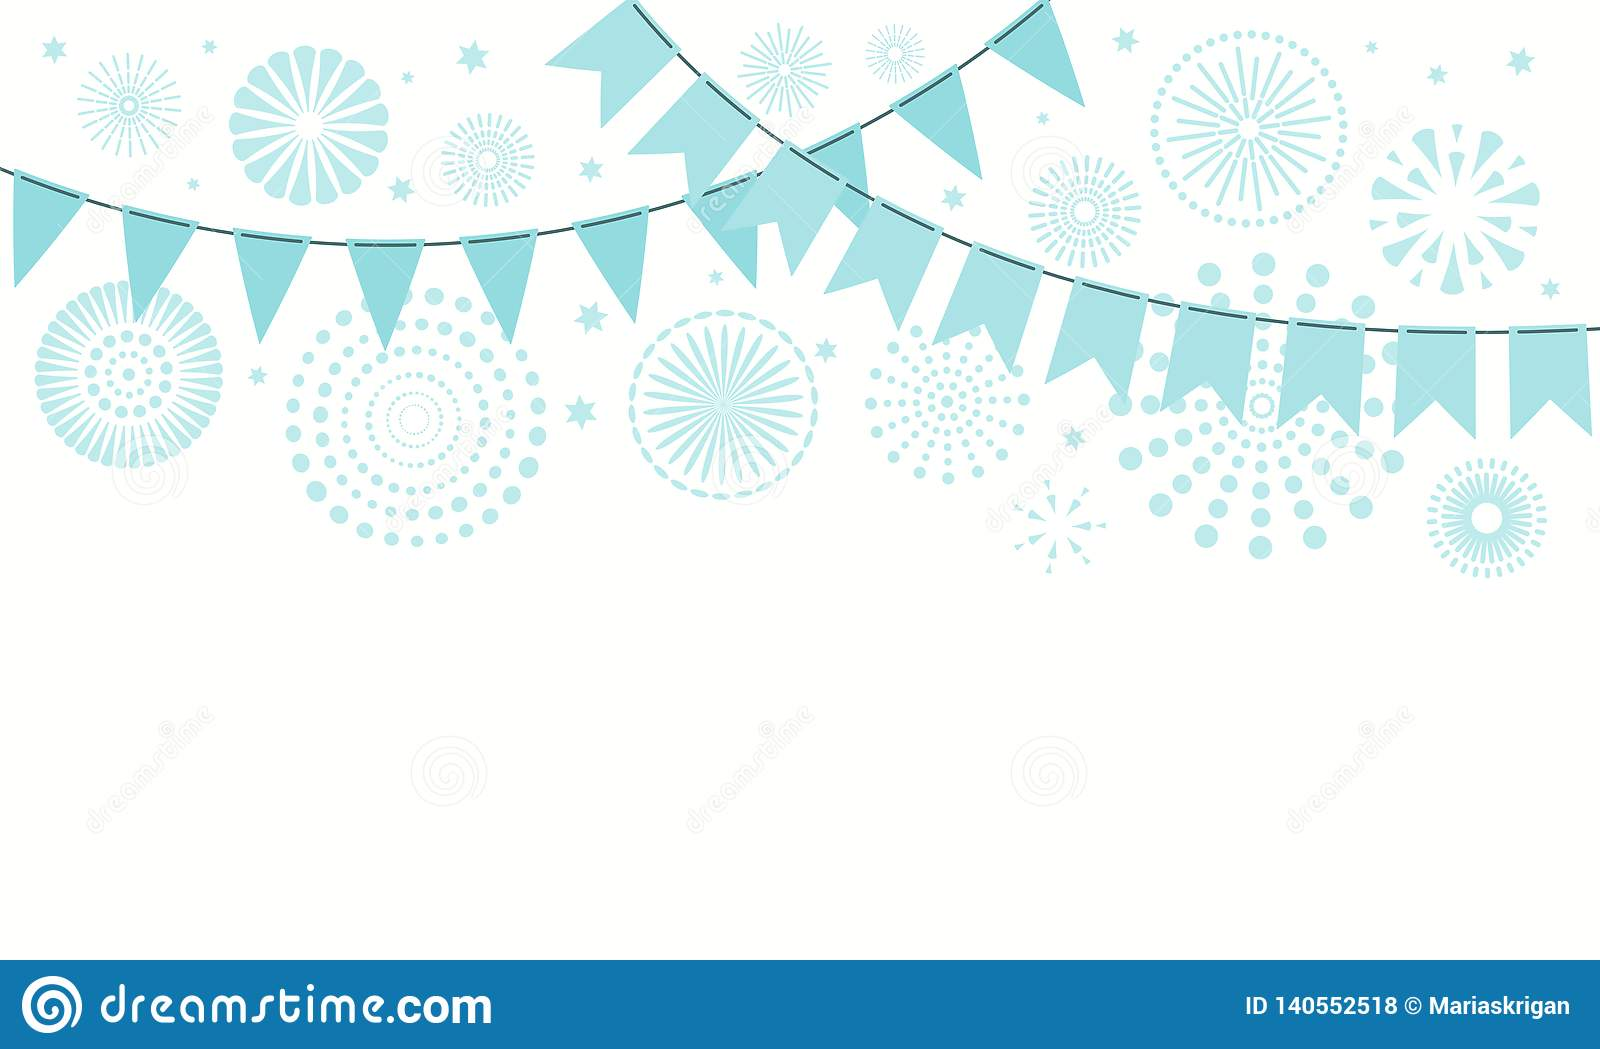 Israel Independence Day Fireworks Bunting Background